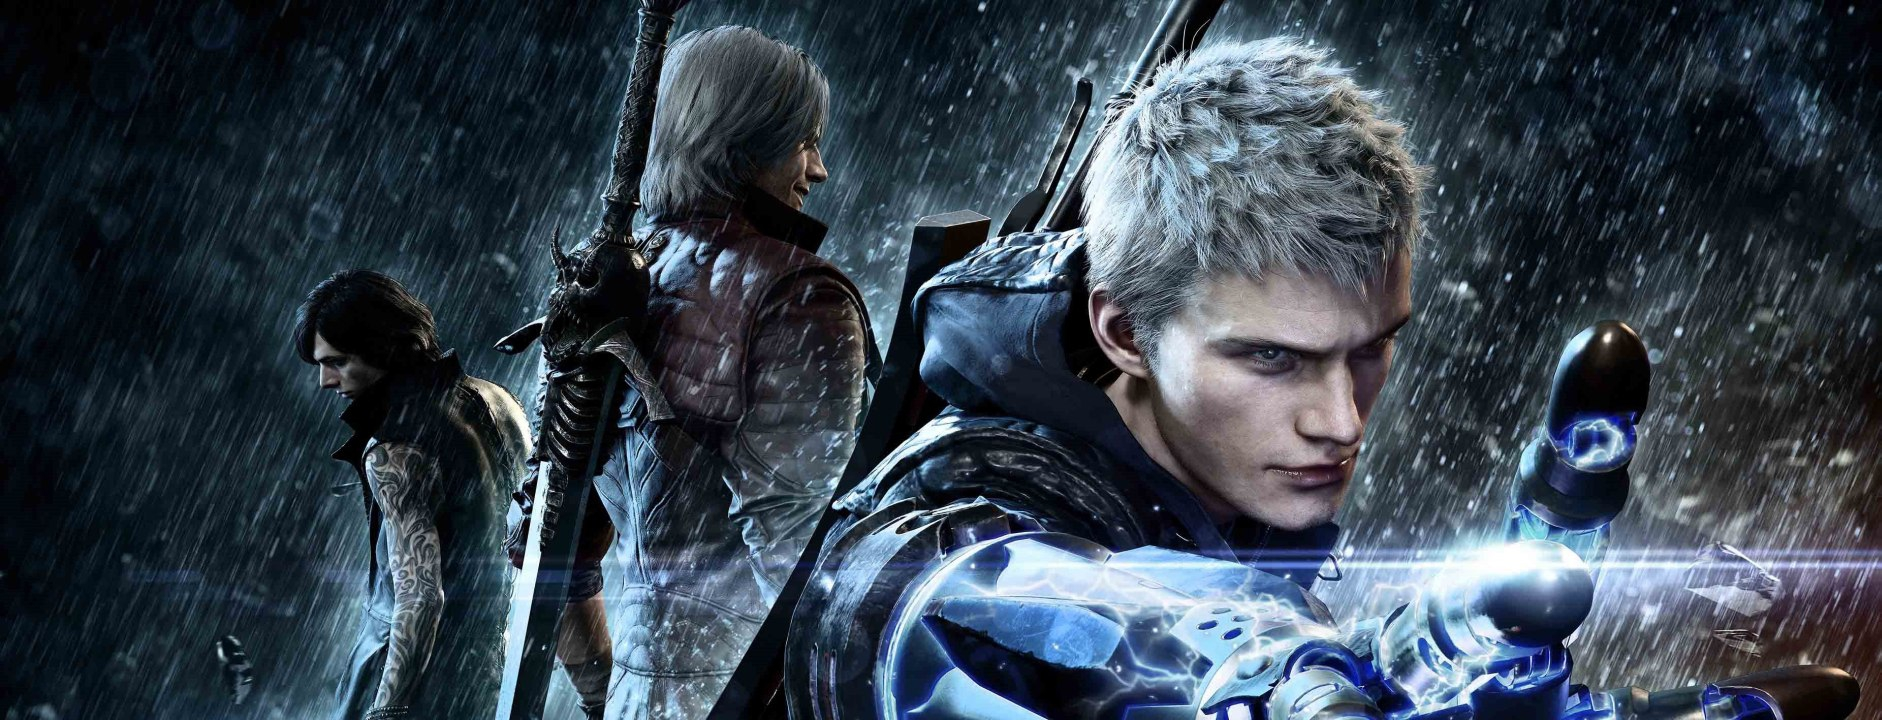 Anteprima Devil May Cry 5